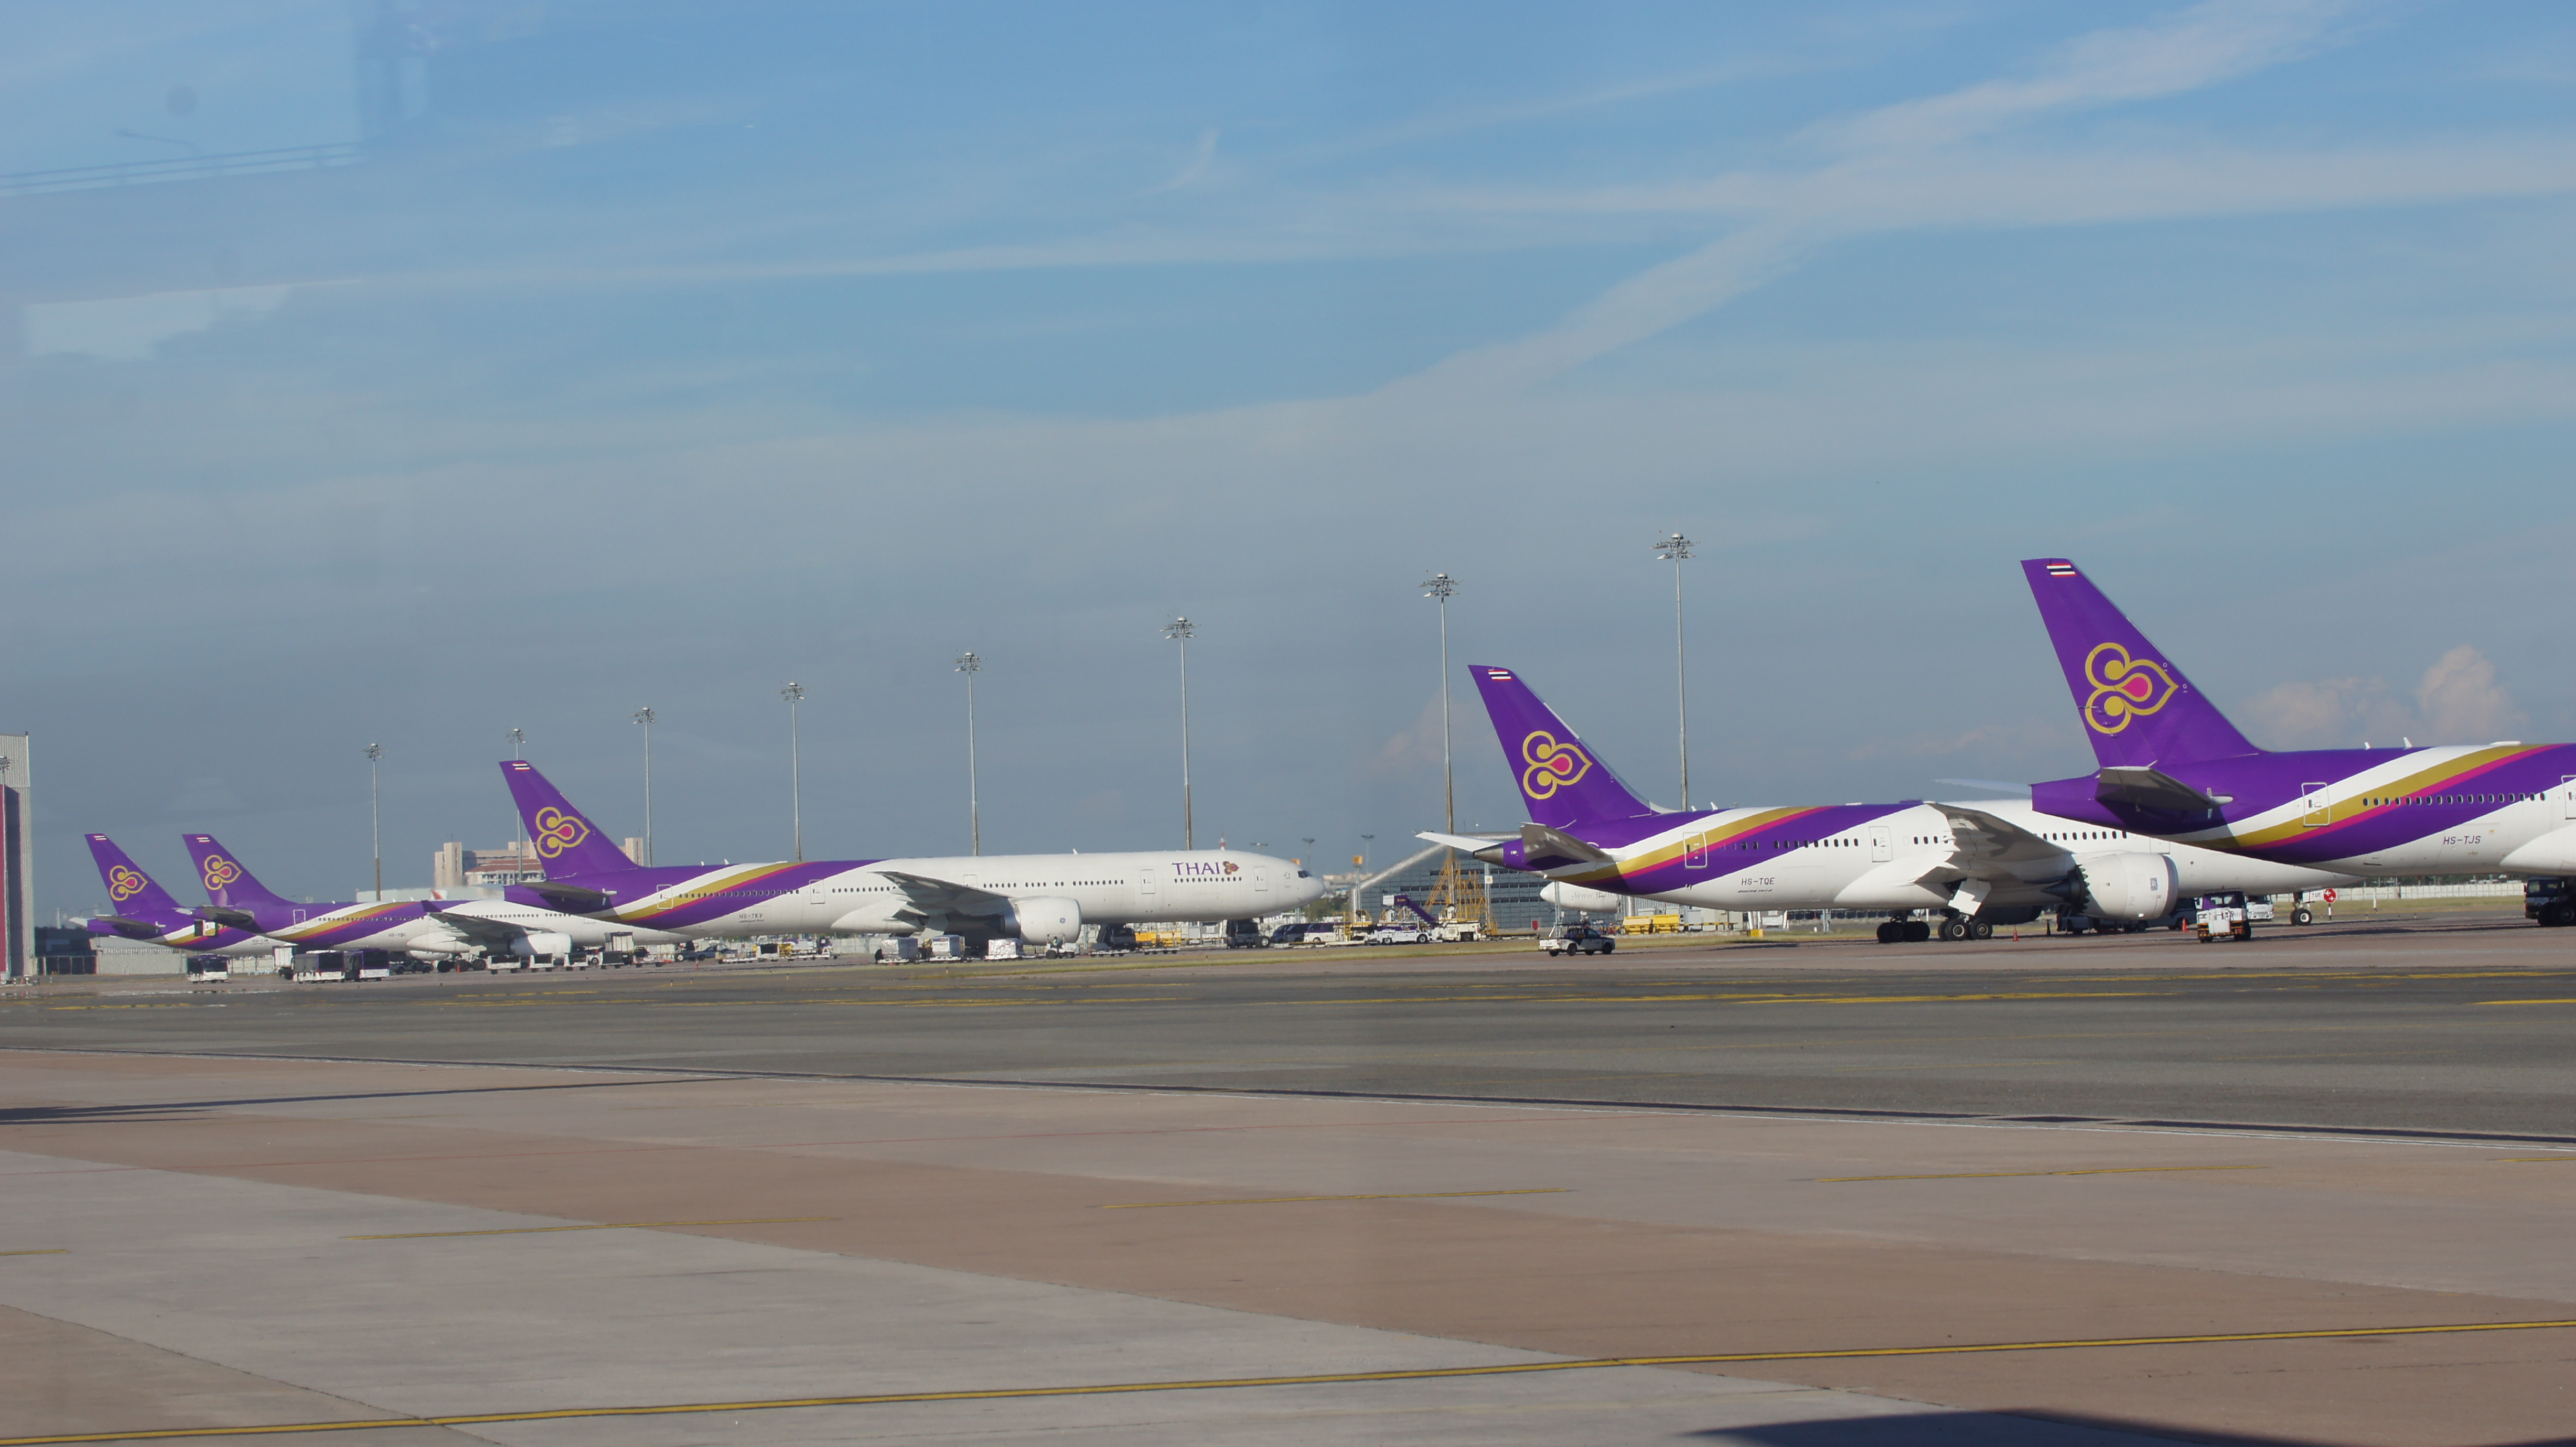 Thai_Airways'_aircraft_line_up_at_Bangkok_Suvarnabhumi_Airport